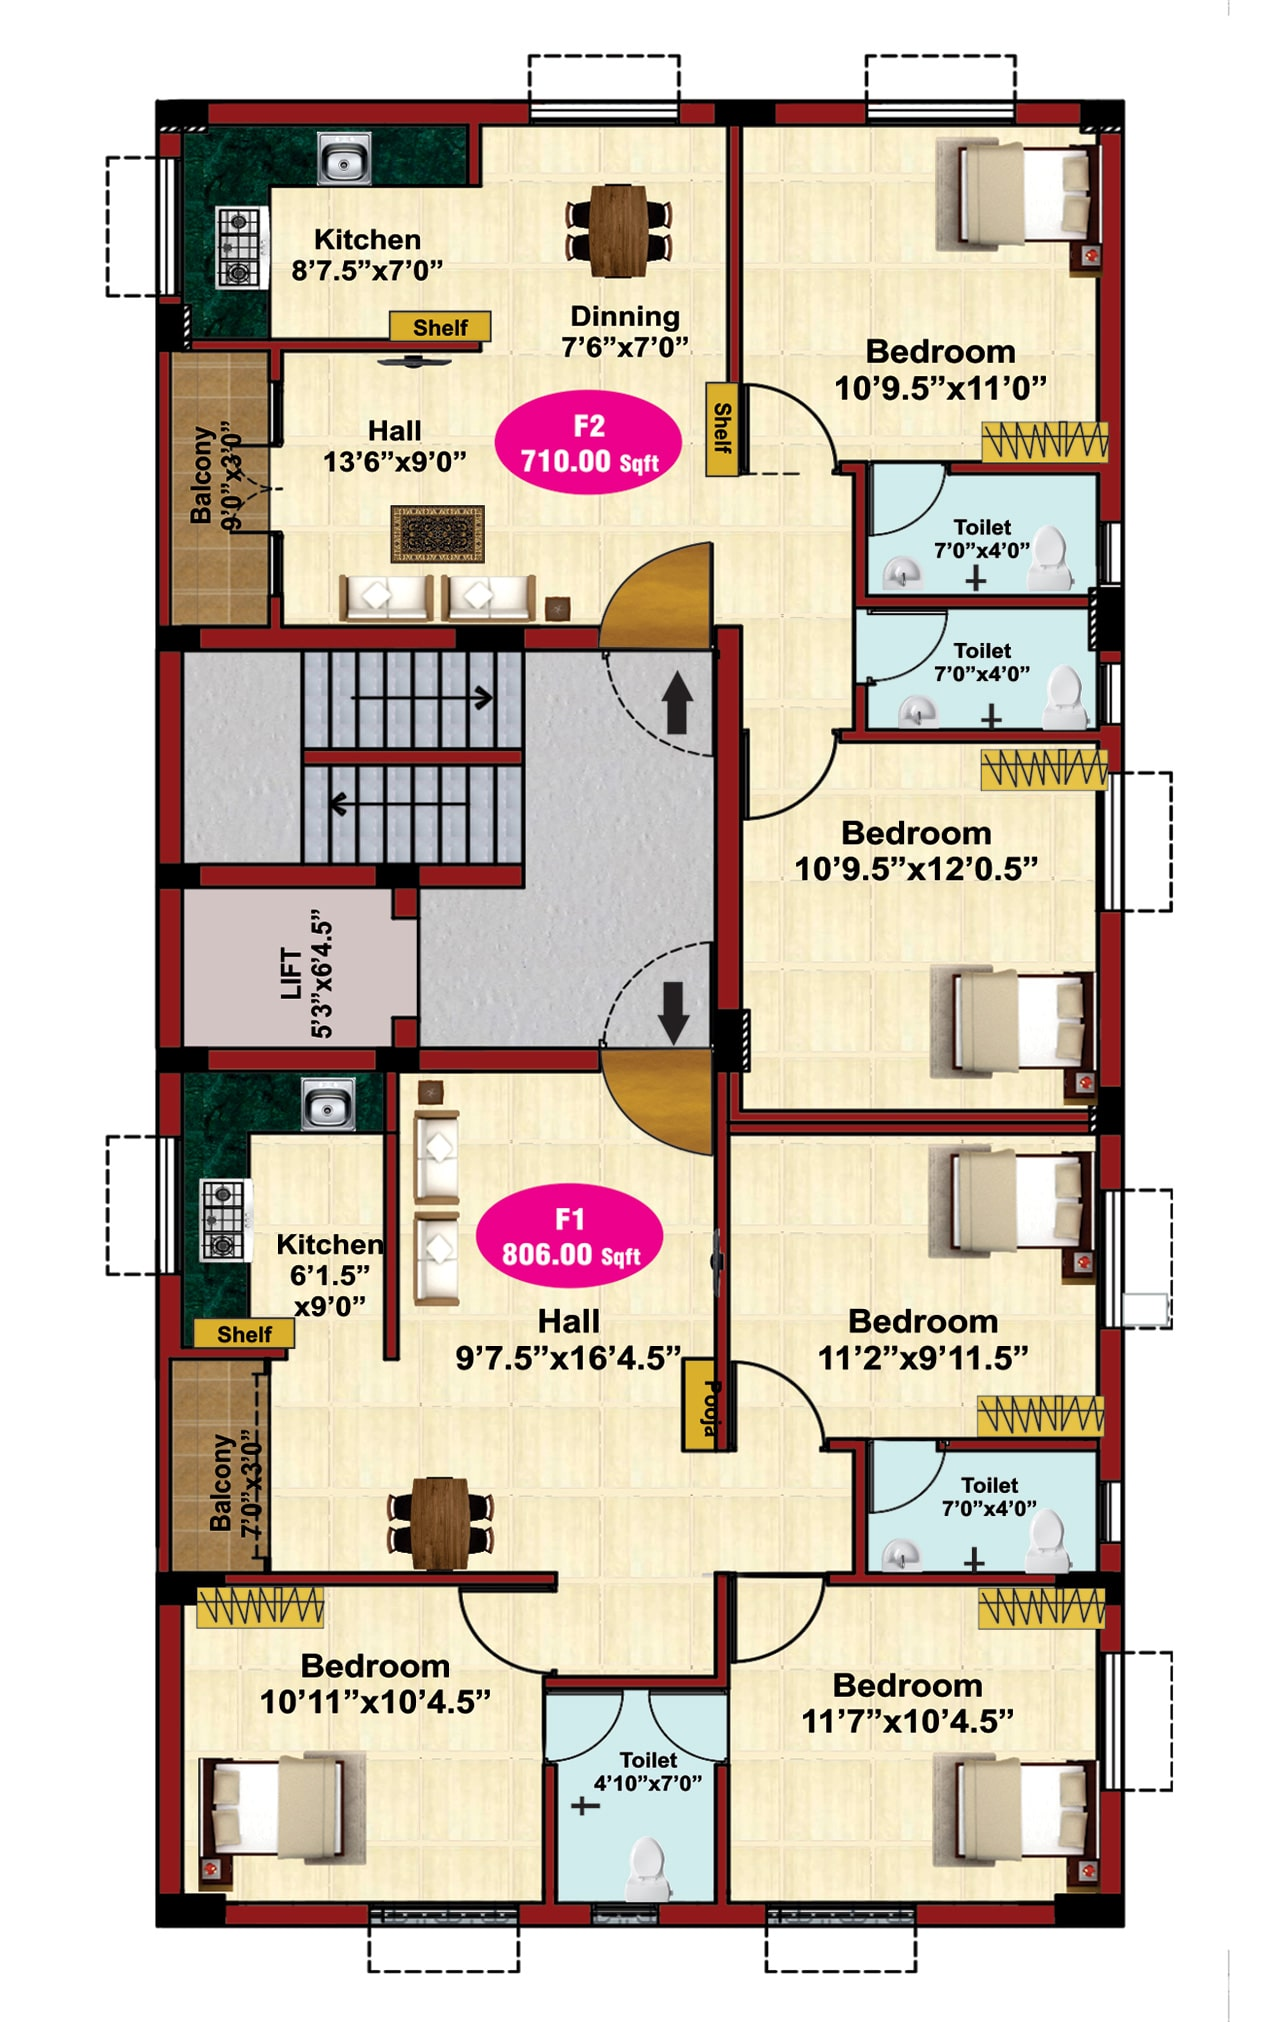 jkb-sri-dwaraka-first-floor-plan2